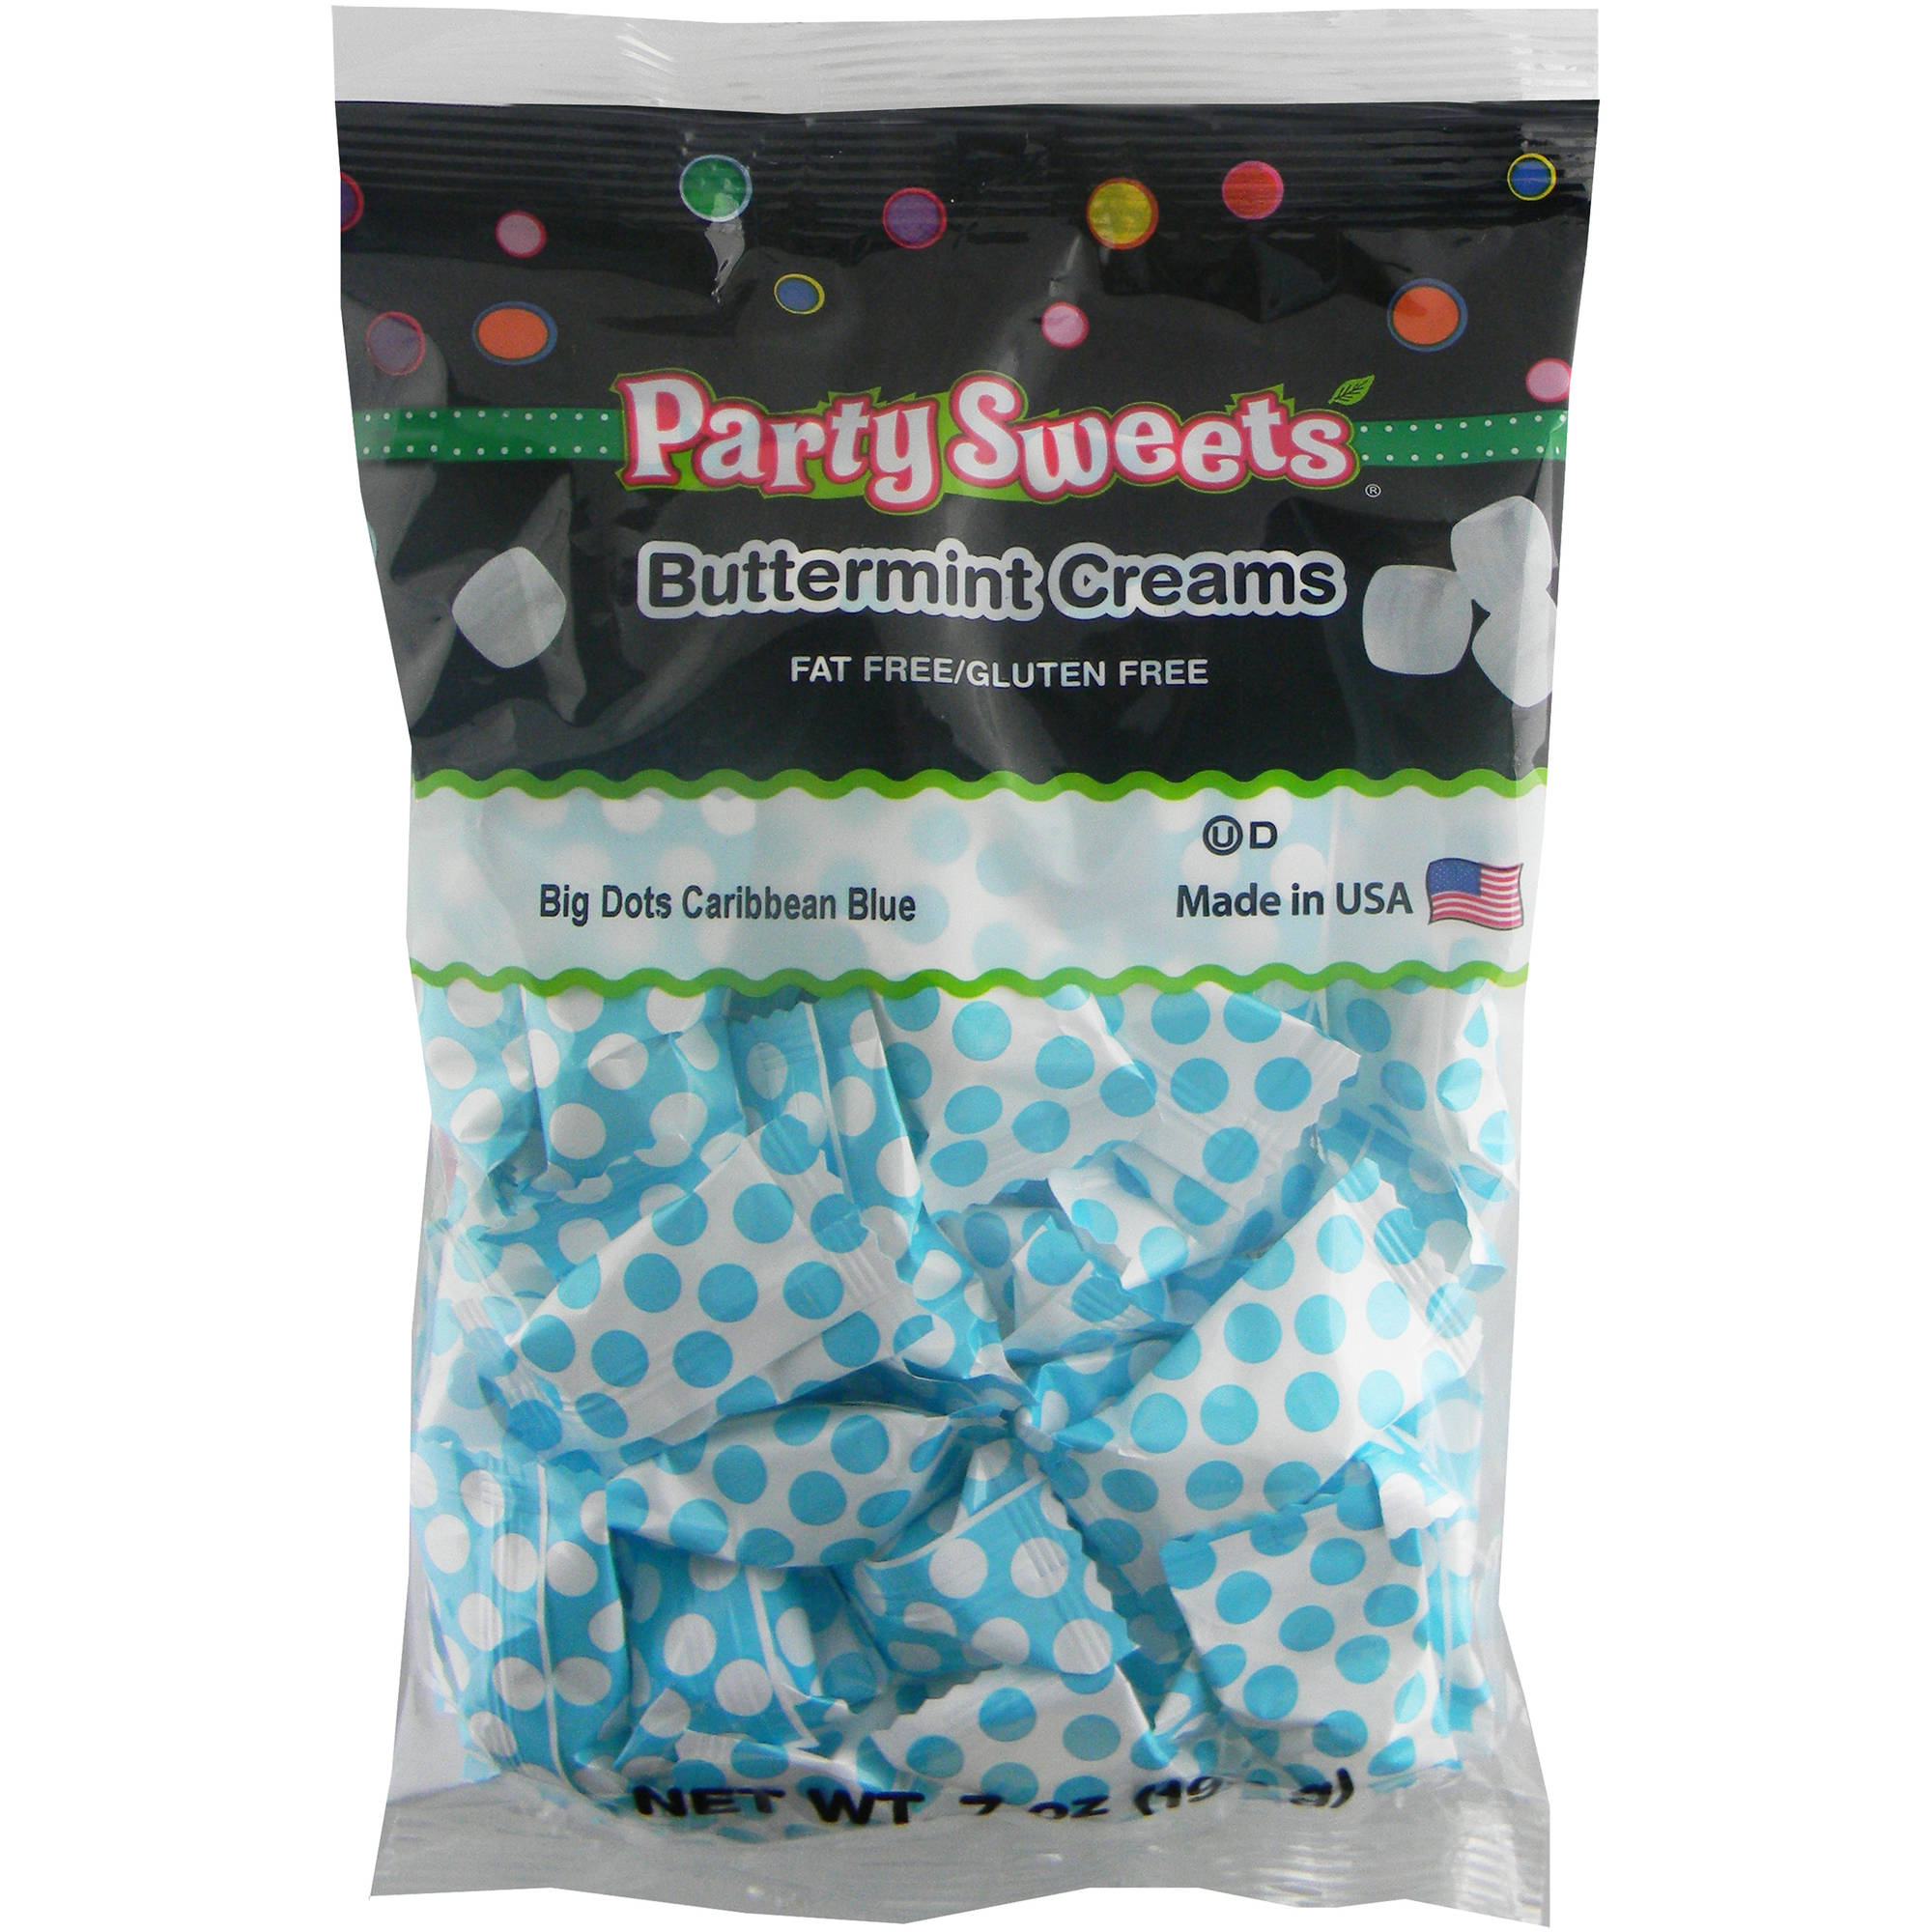 Party Sweets Big Dots Caribbean Blue Buttermint Creams Candy, 7 oz